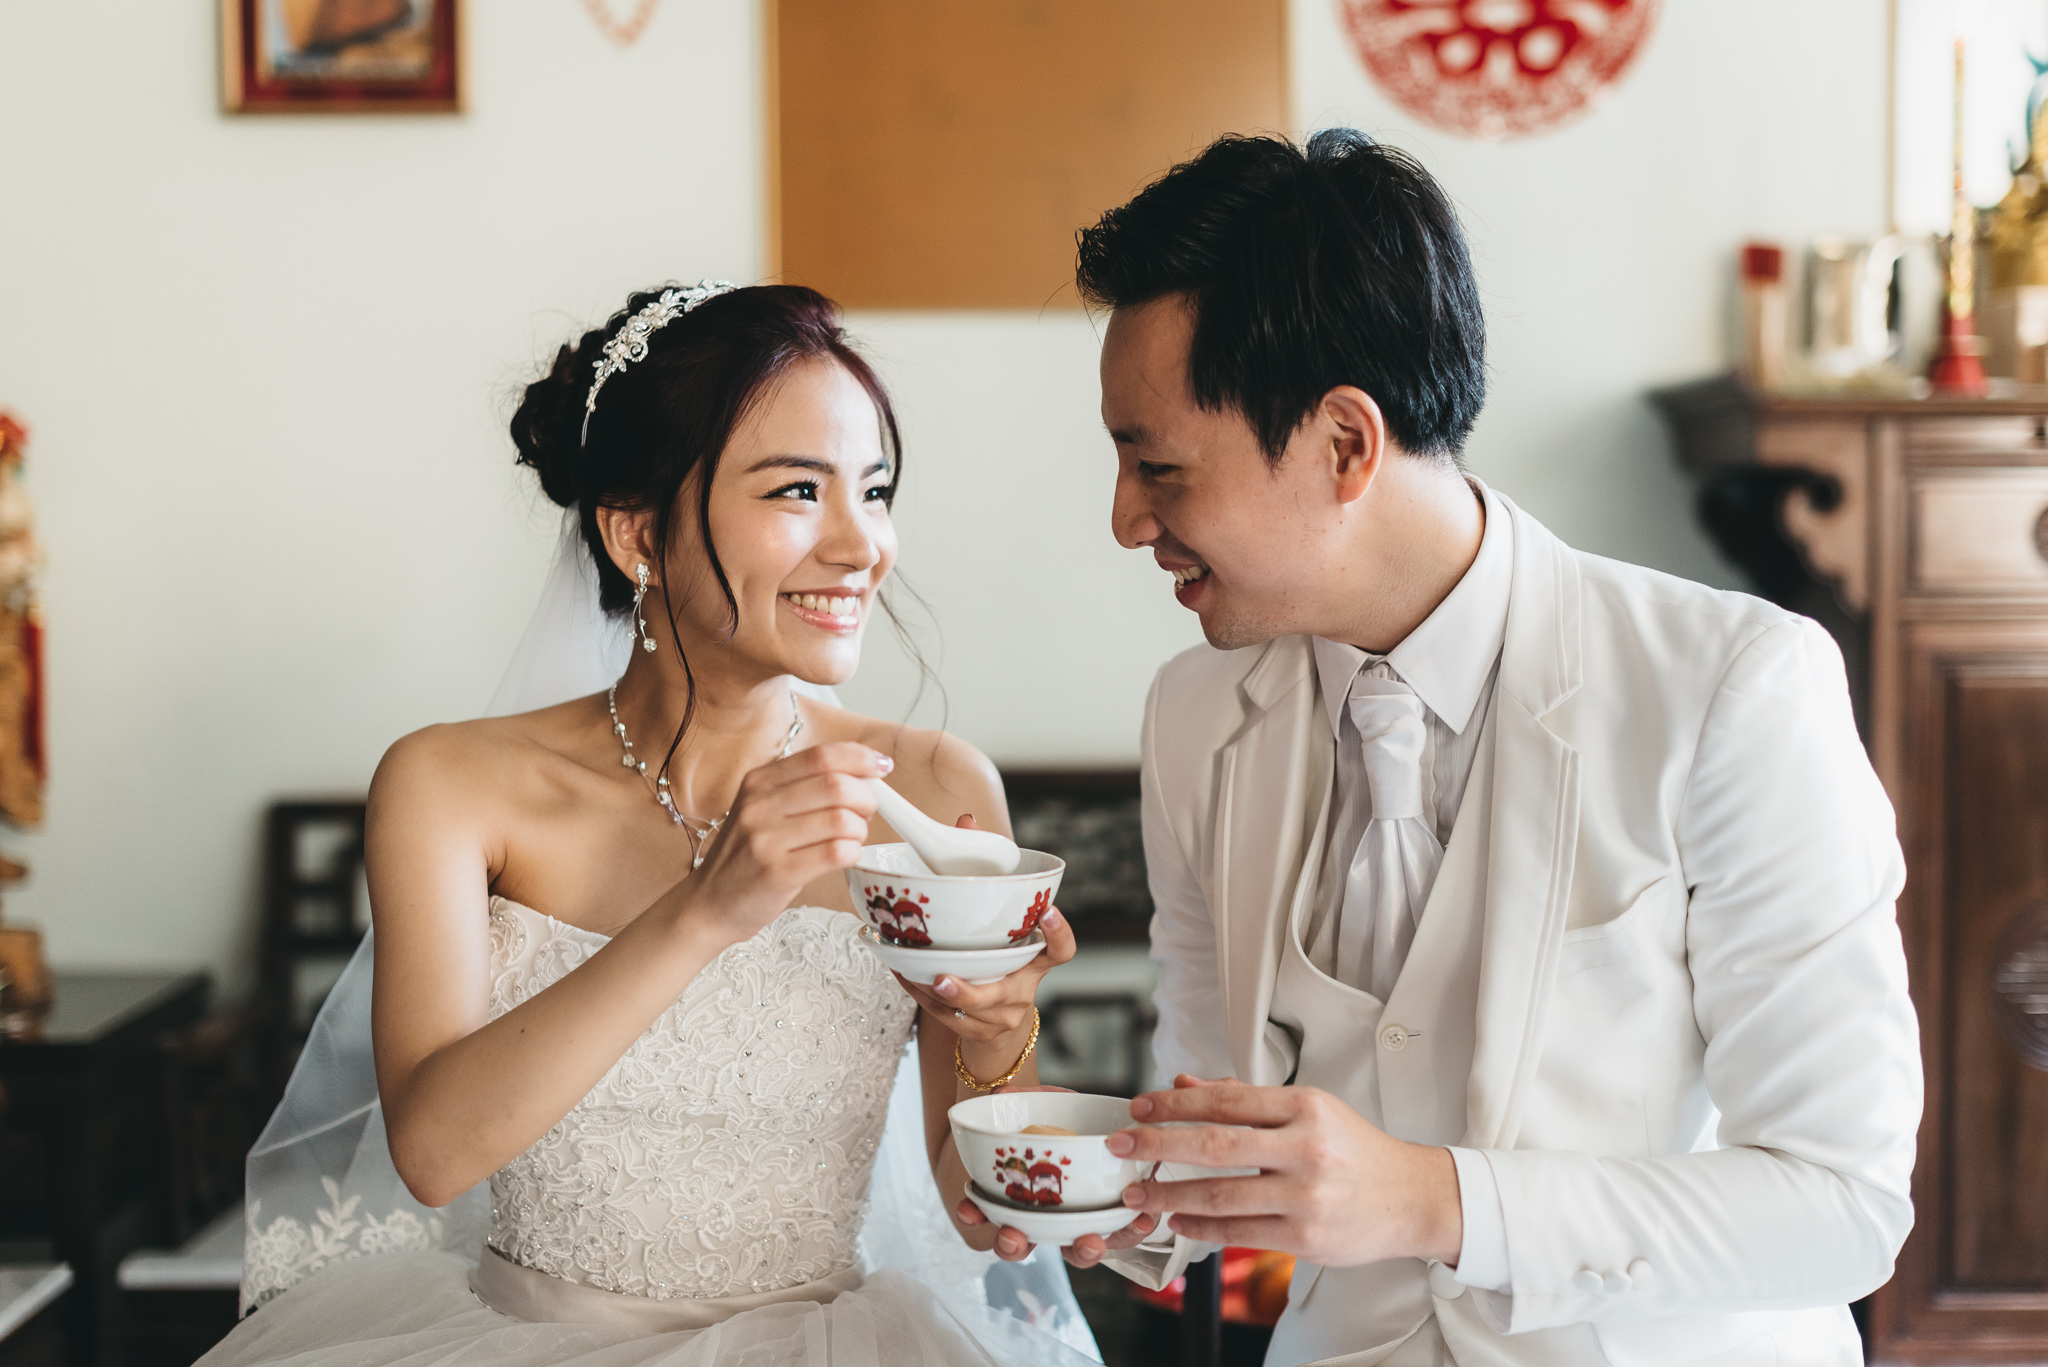 Fiona & Terence Wedding Day Highlights (resized for sharing) - 132.jpg